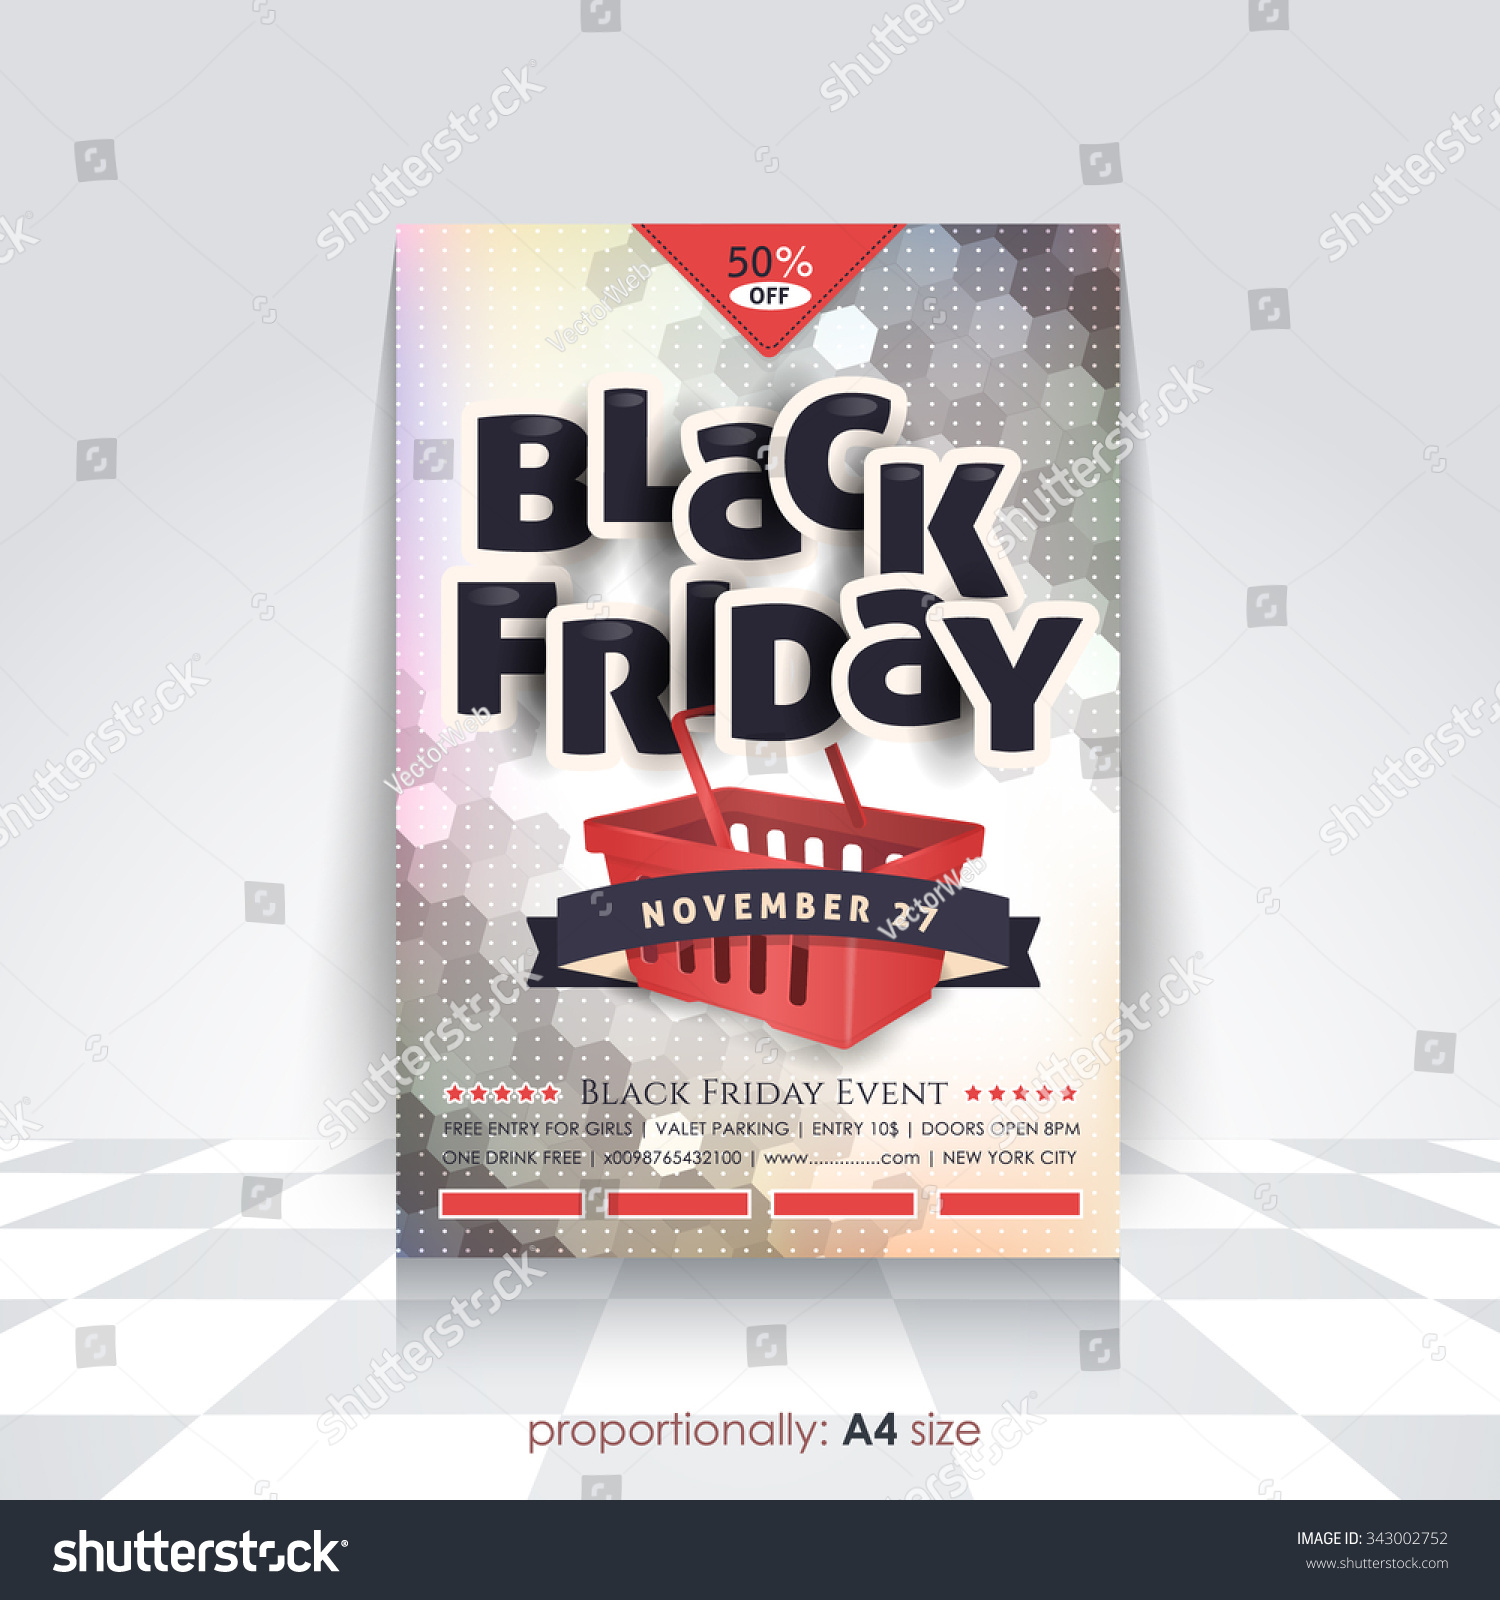 a style black friday poster flyer stock vector  a4 style black friday poster flyer advertising design